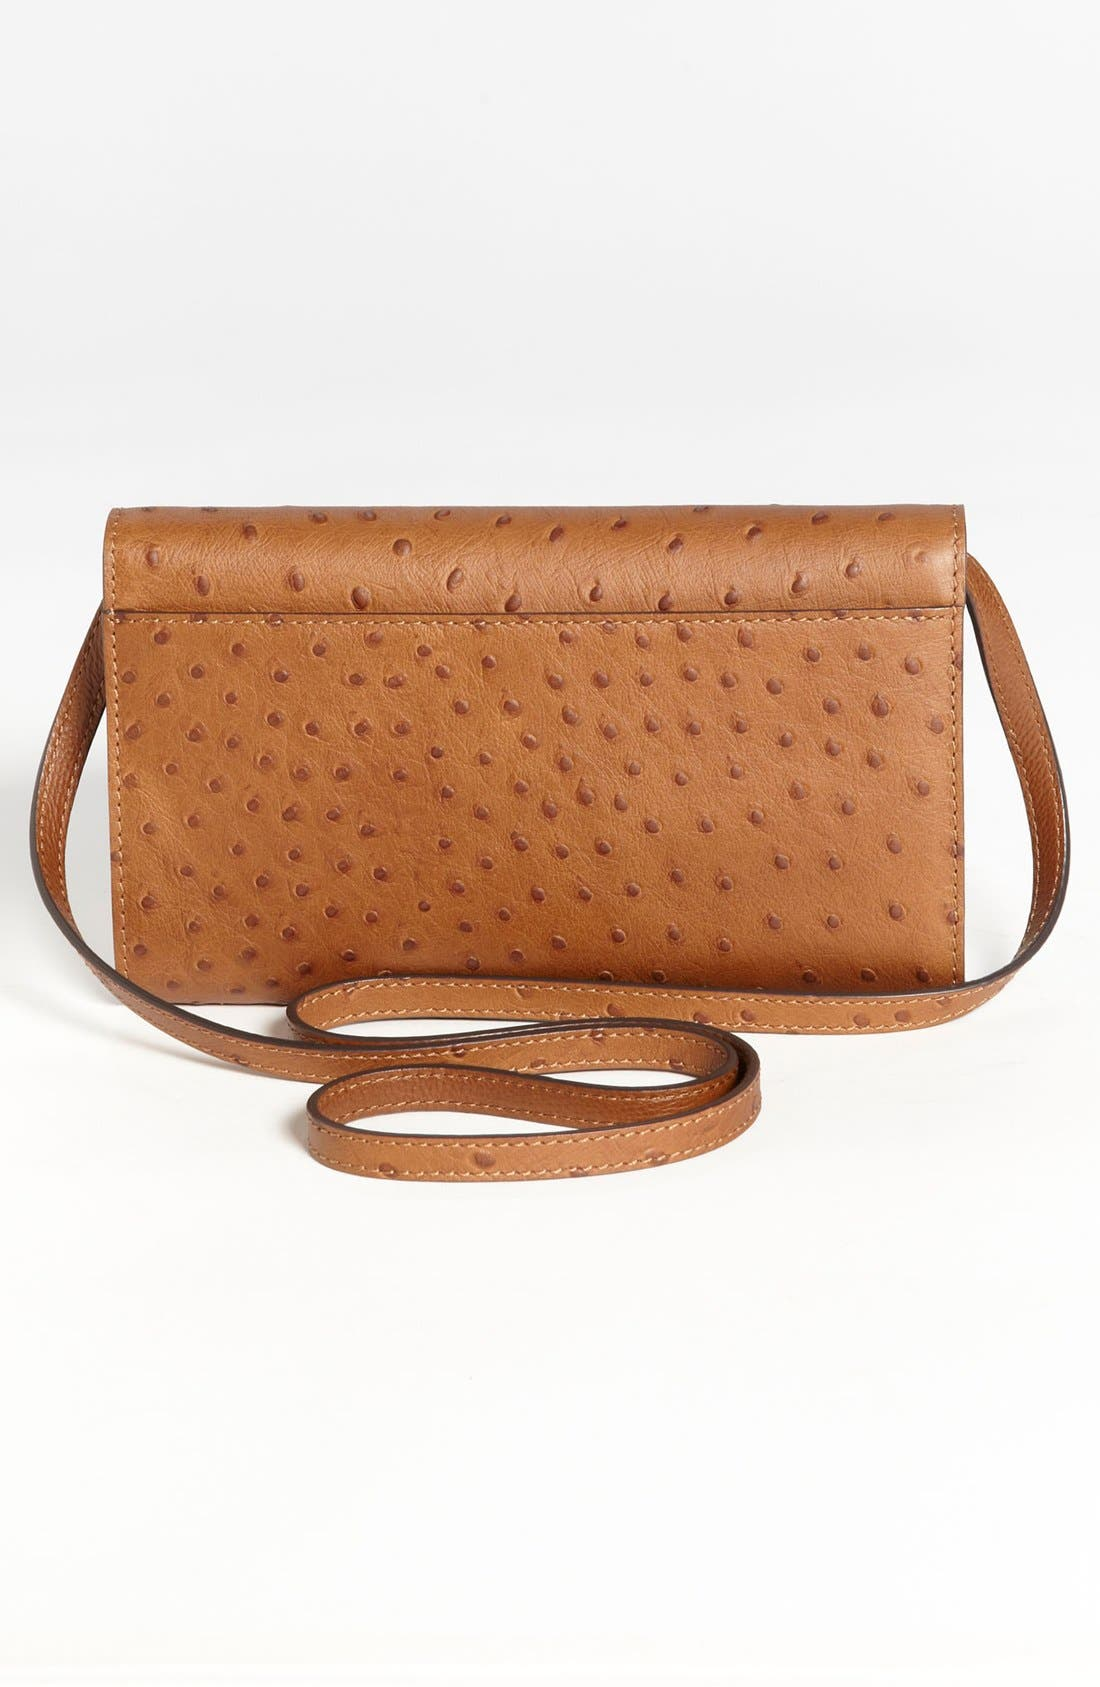 Alternate Image 3  - Michael Kors 'Gia' Ostrich Embossed Leather Clutch